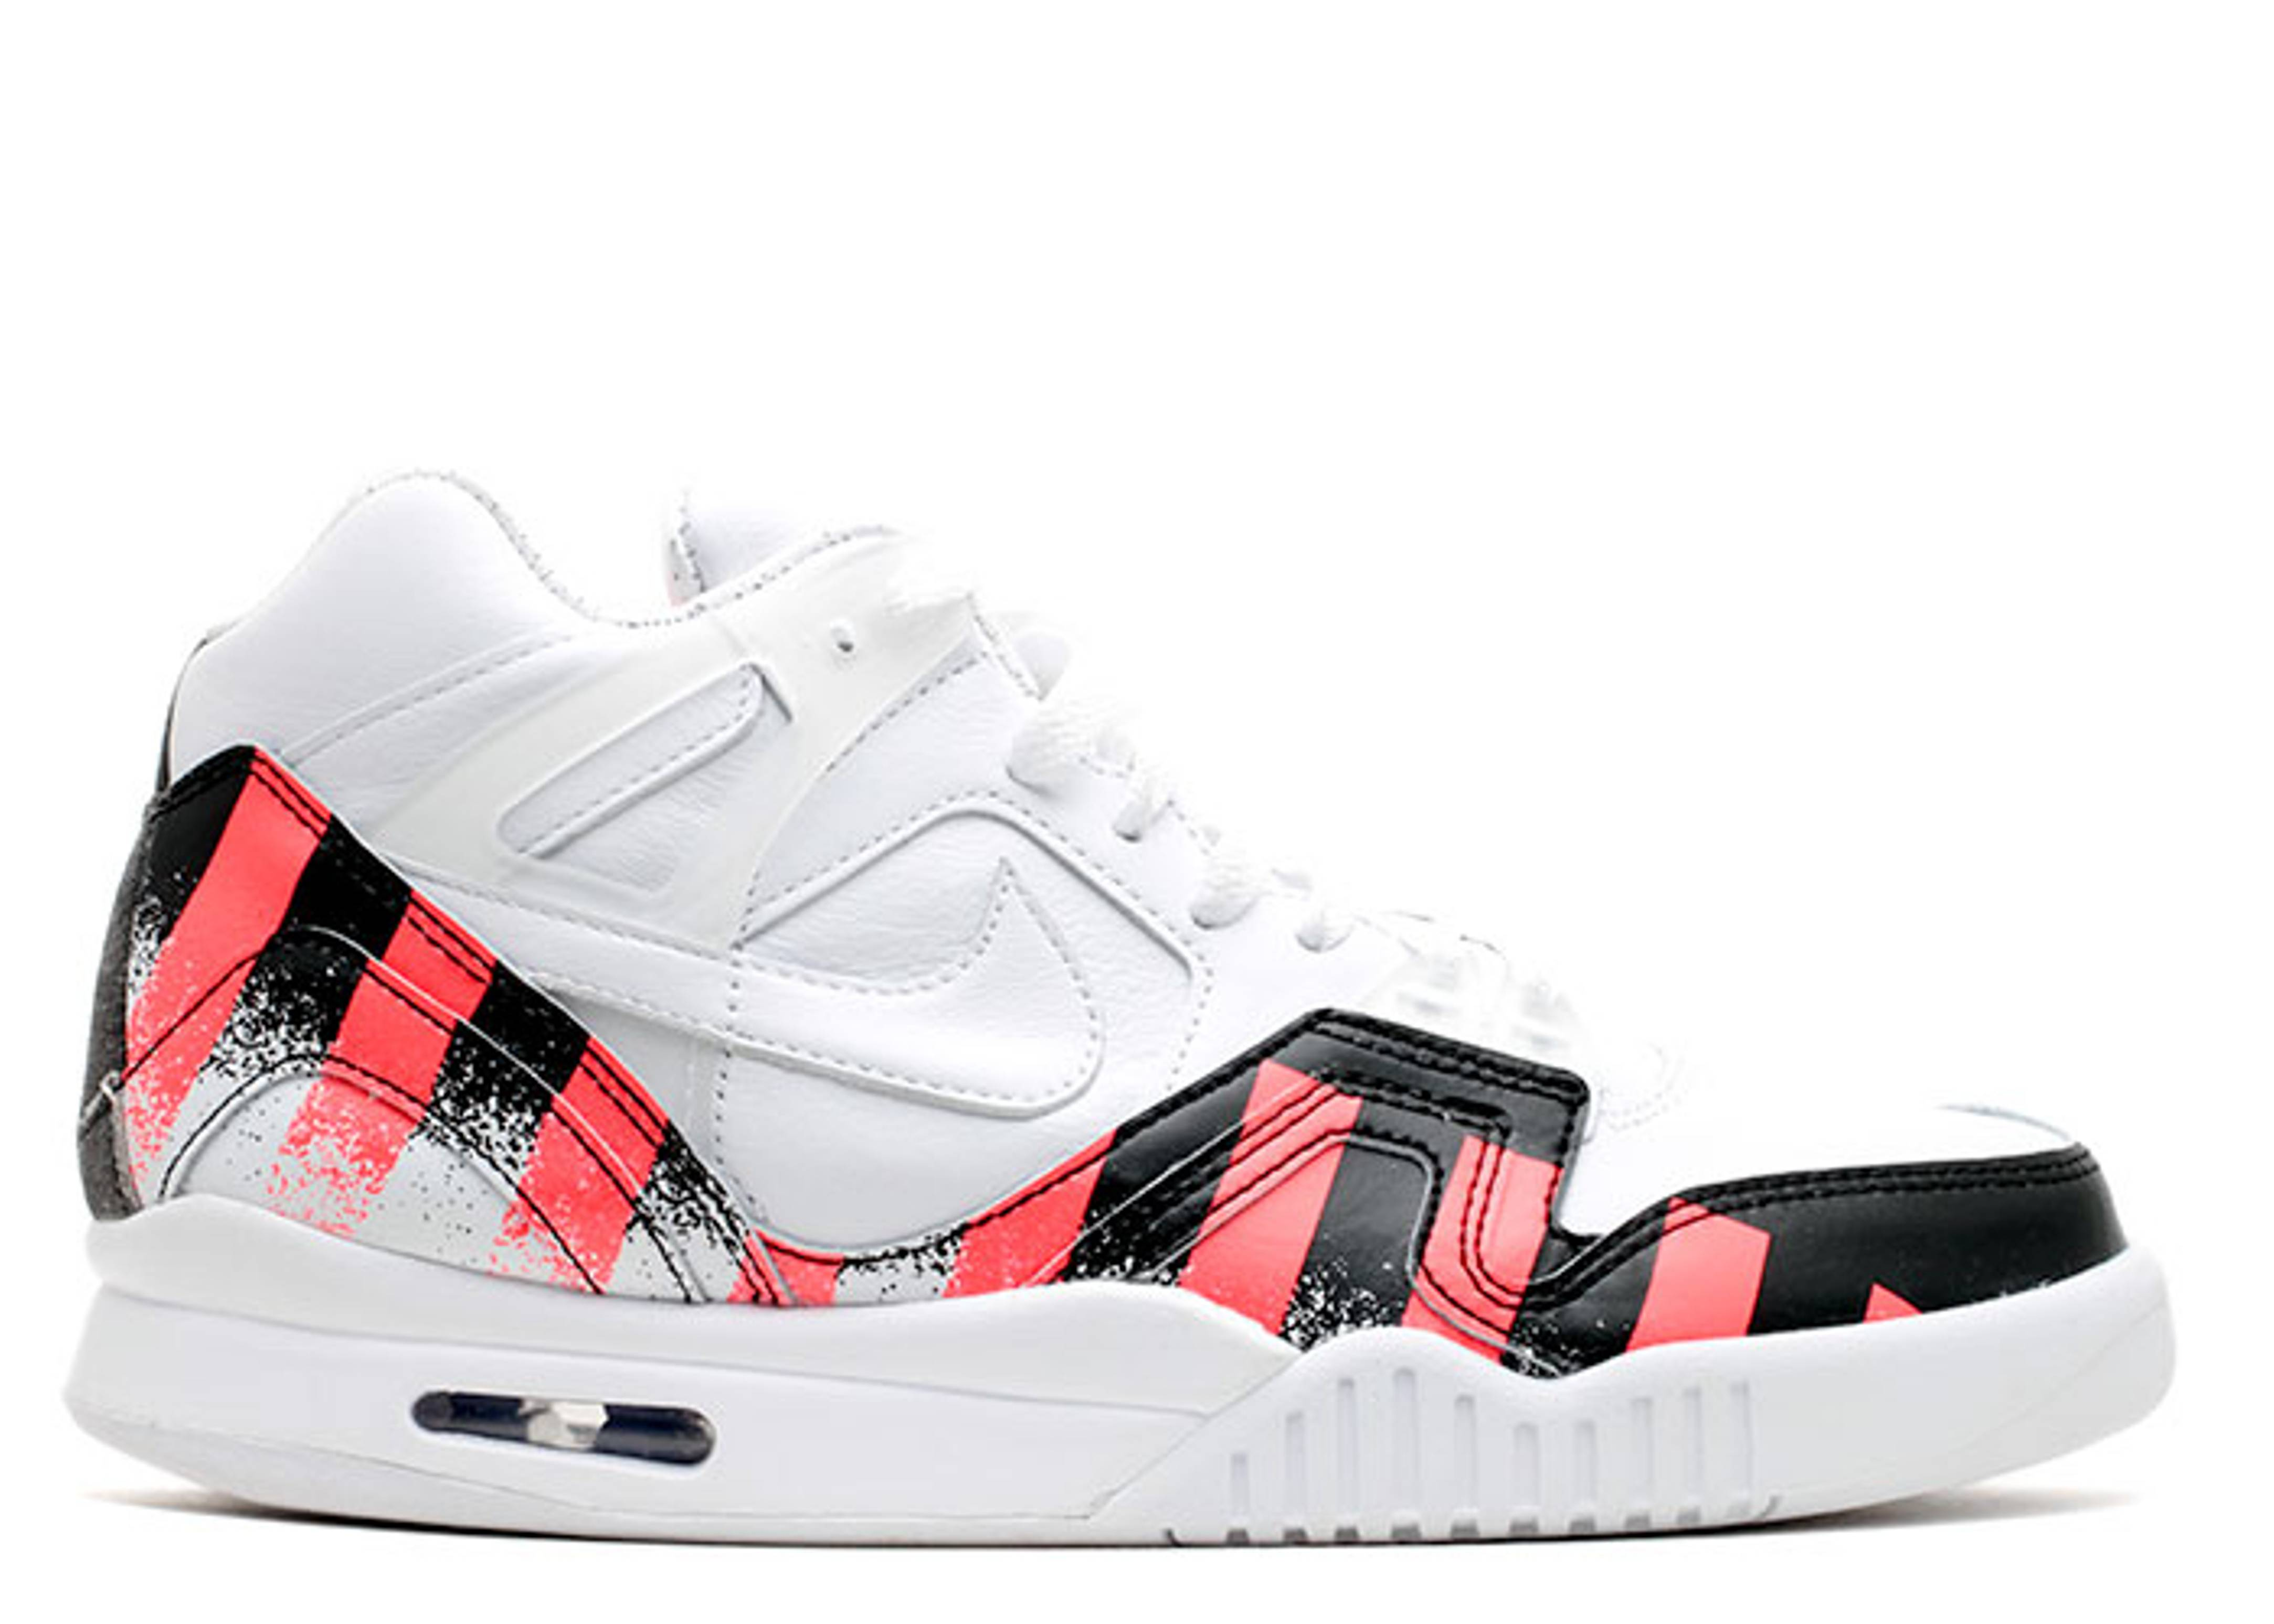 Air tech challenge 2 french open nike 621358 116 white white laser crimson flight club - Nike air tech challenge ...